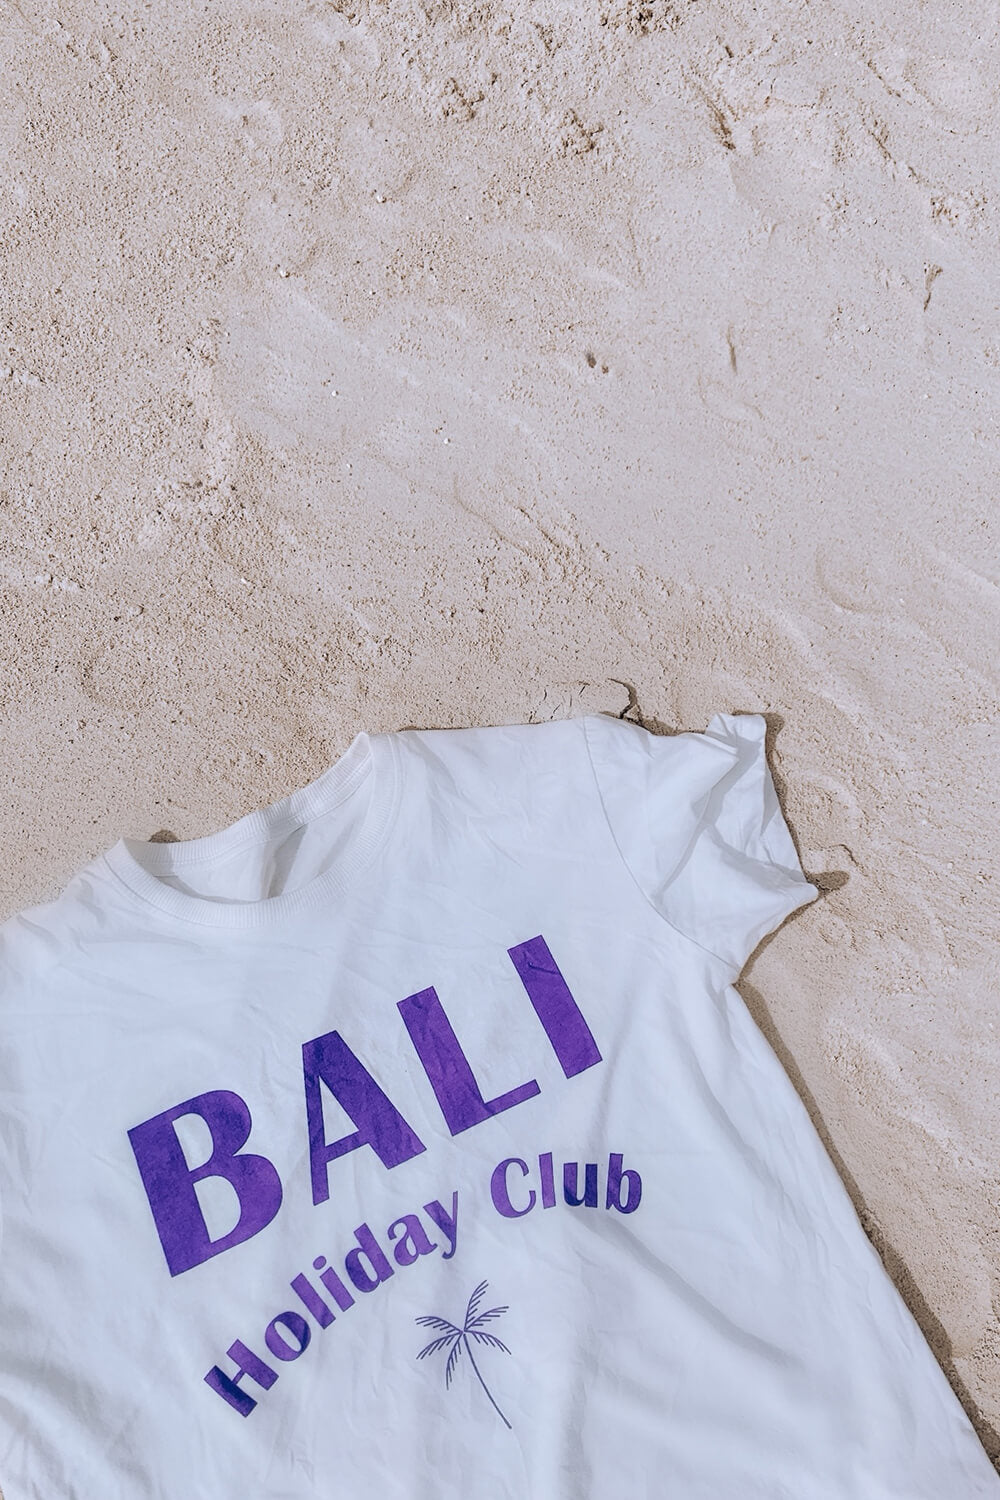 Bali Holiday Club T-shirt